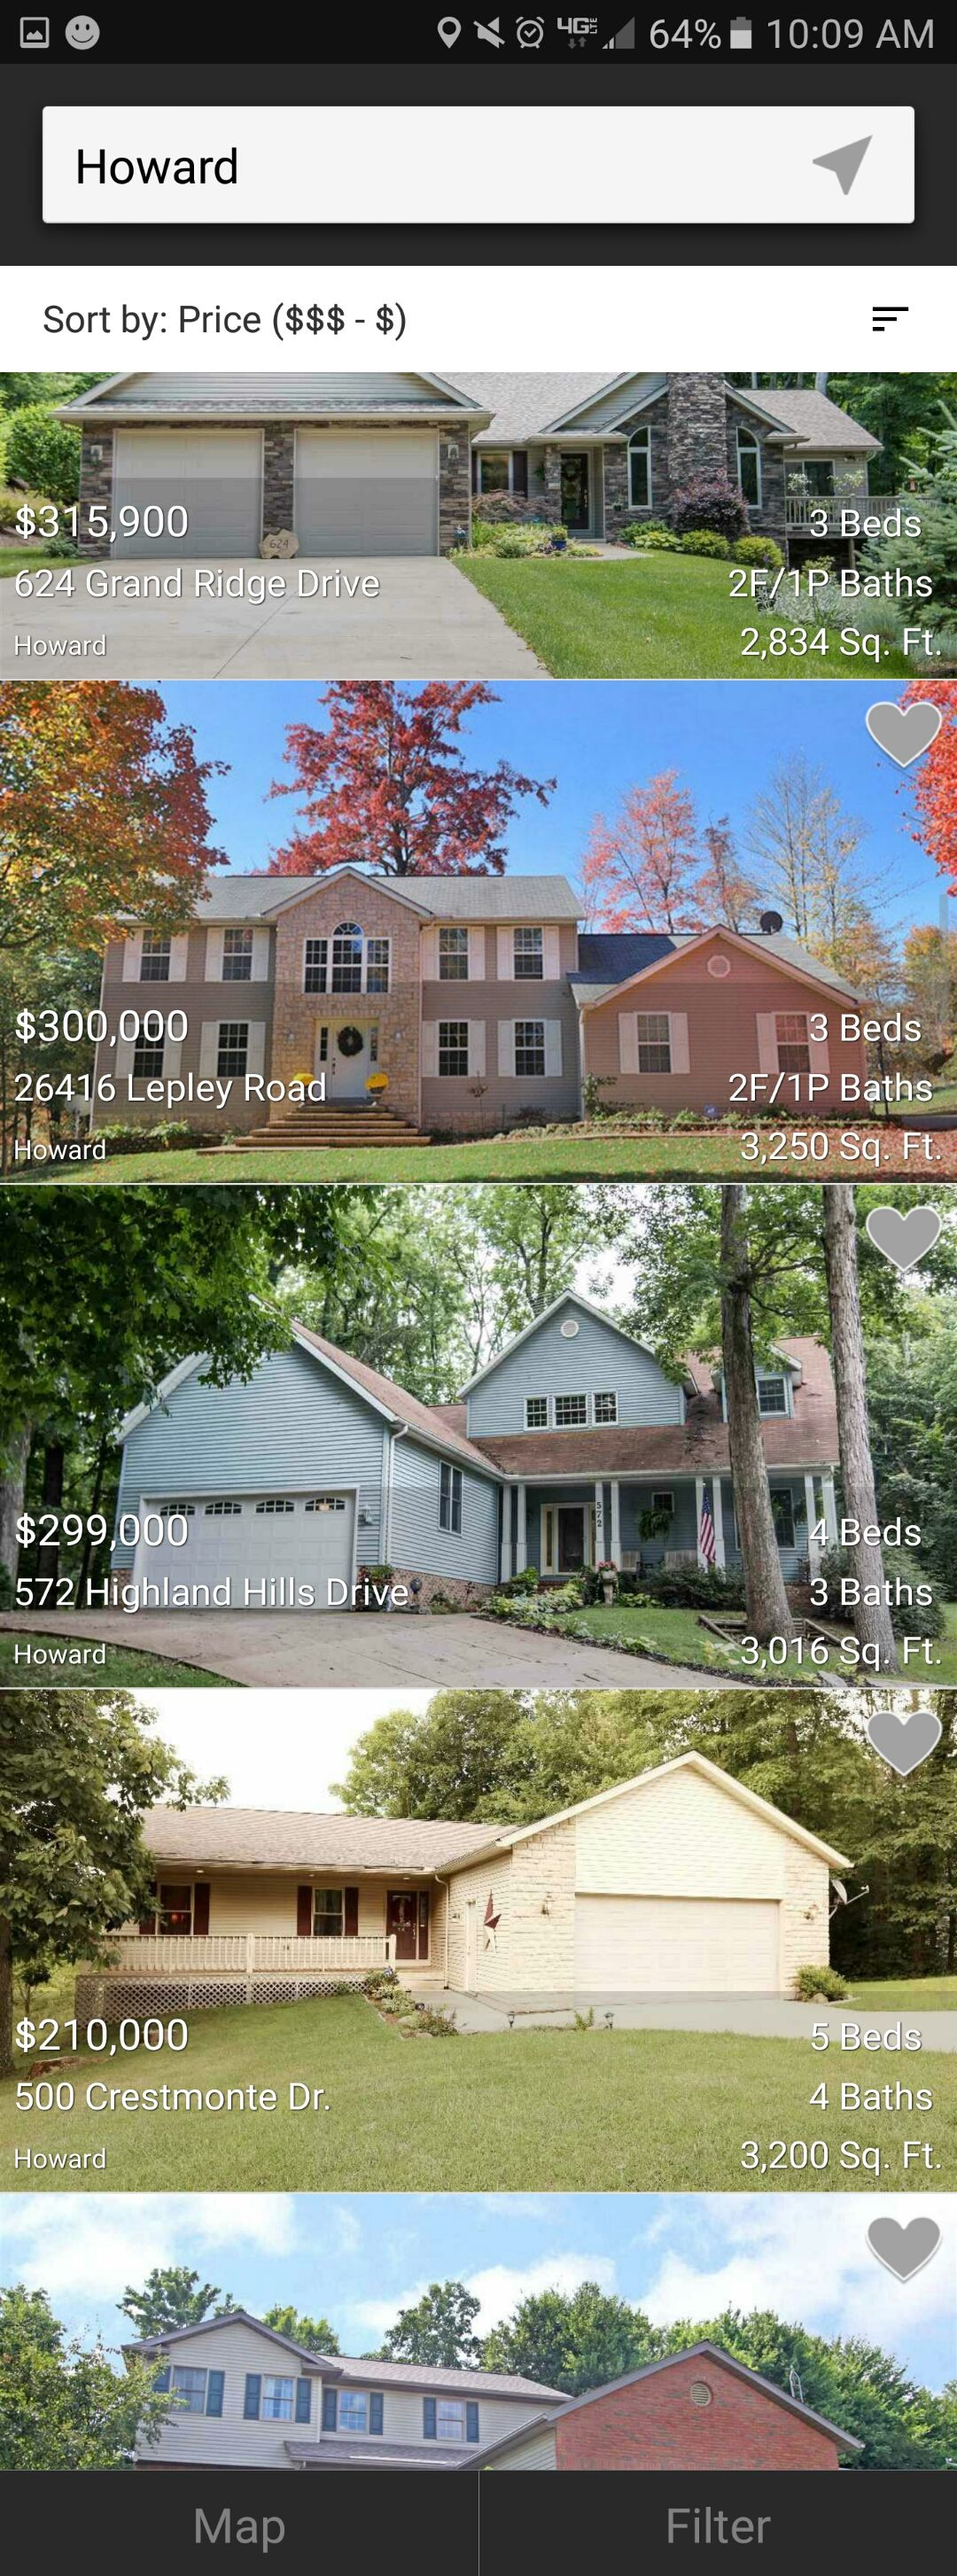 In a clean and easytoready list view all of howard ohio